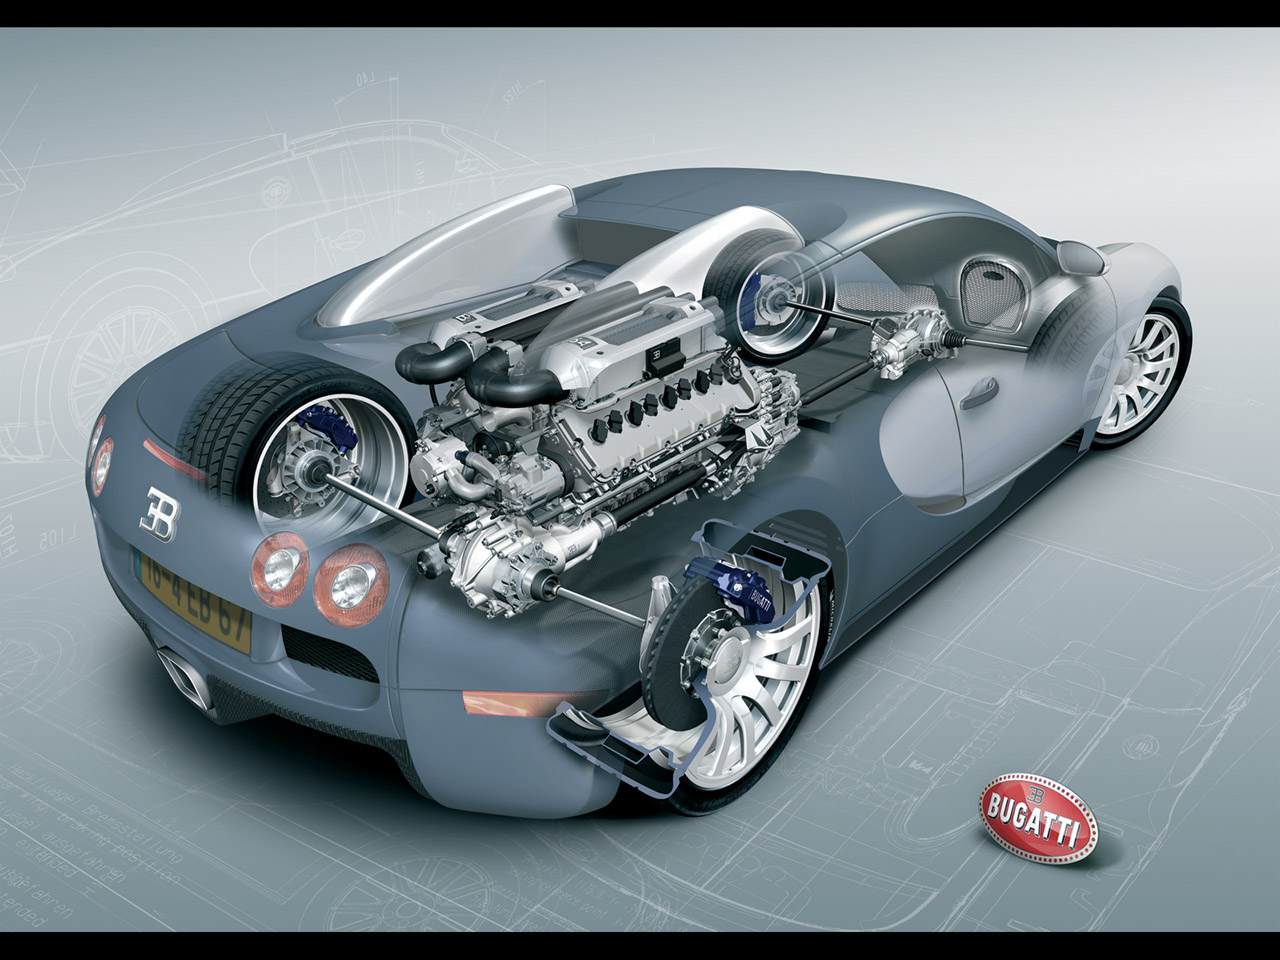 Bugatti Veyron Includes World's Most Expensive Cars